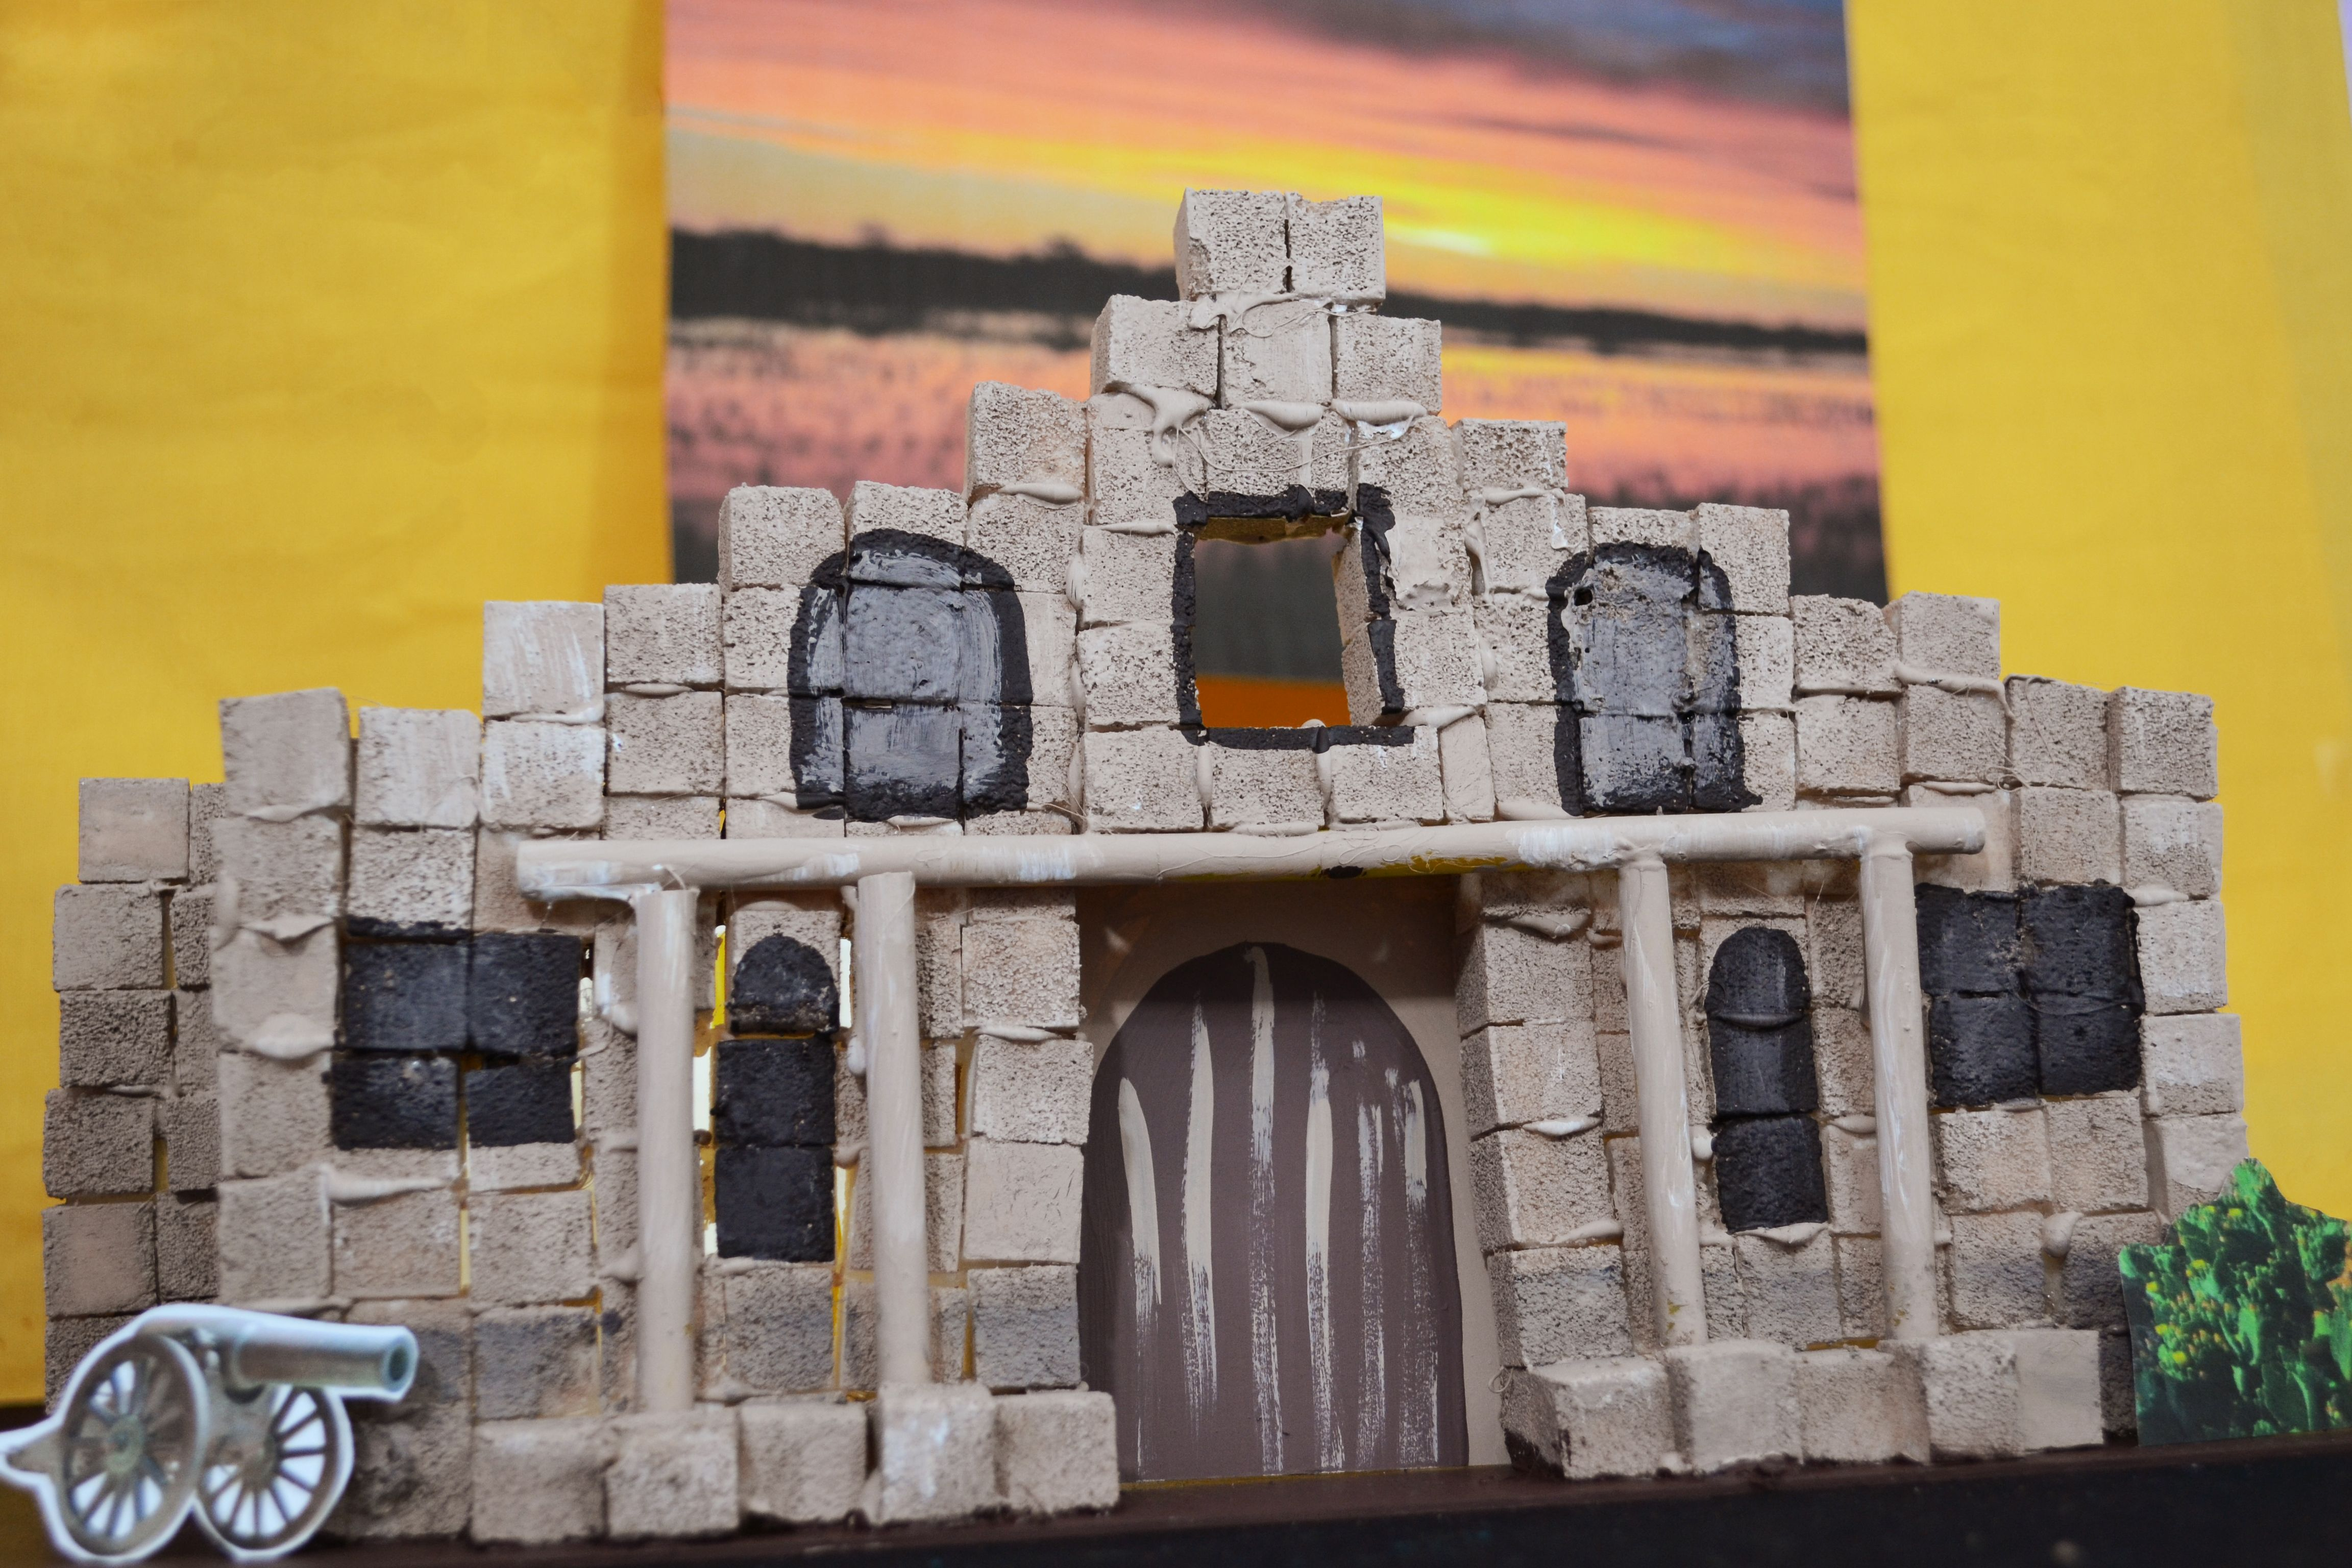 How To Build The Alamo For A School Project Ehow School Projects Alamo Texas History Projects